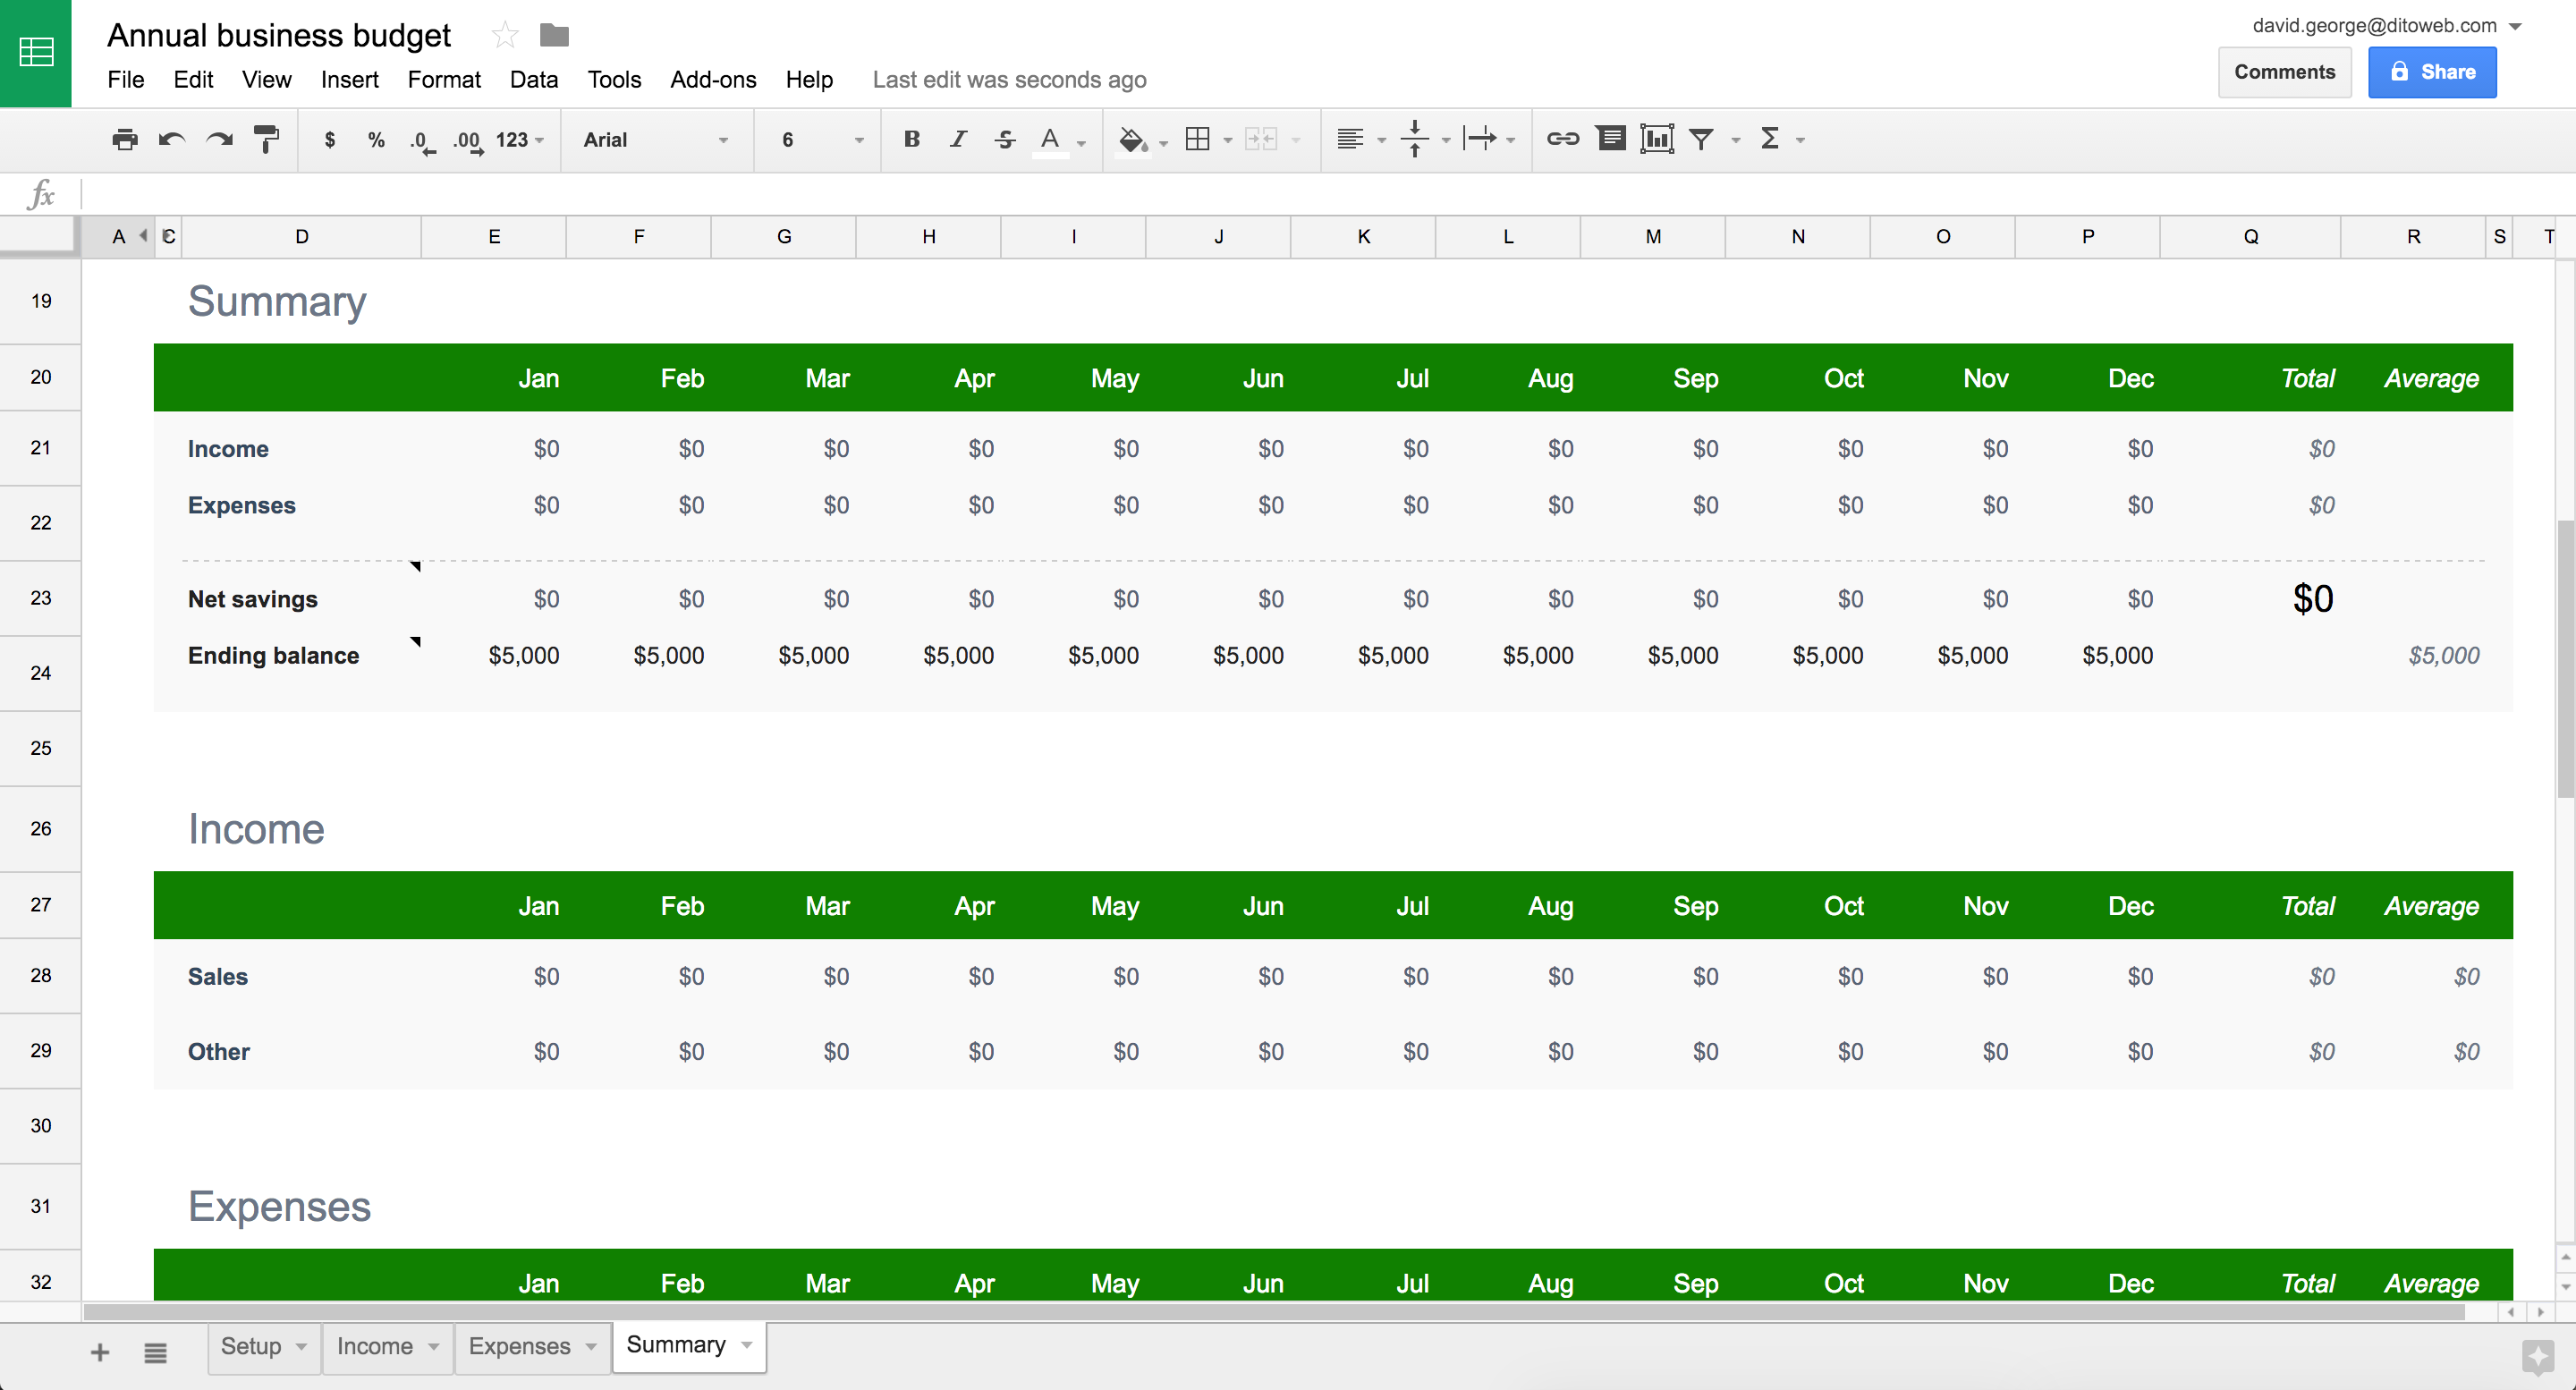 new-google-sheets-annual-business-budget-template